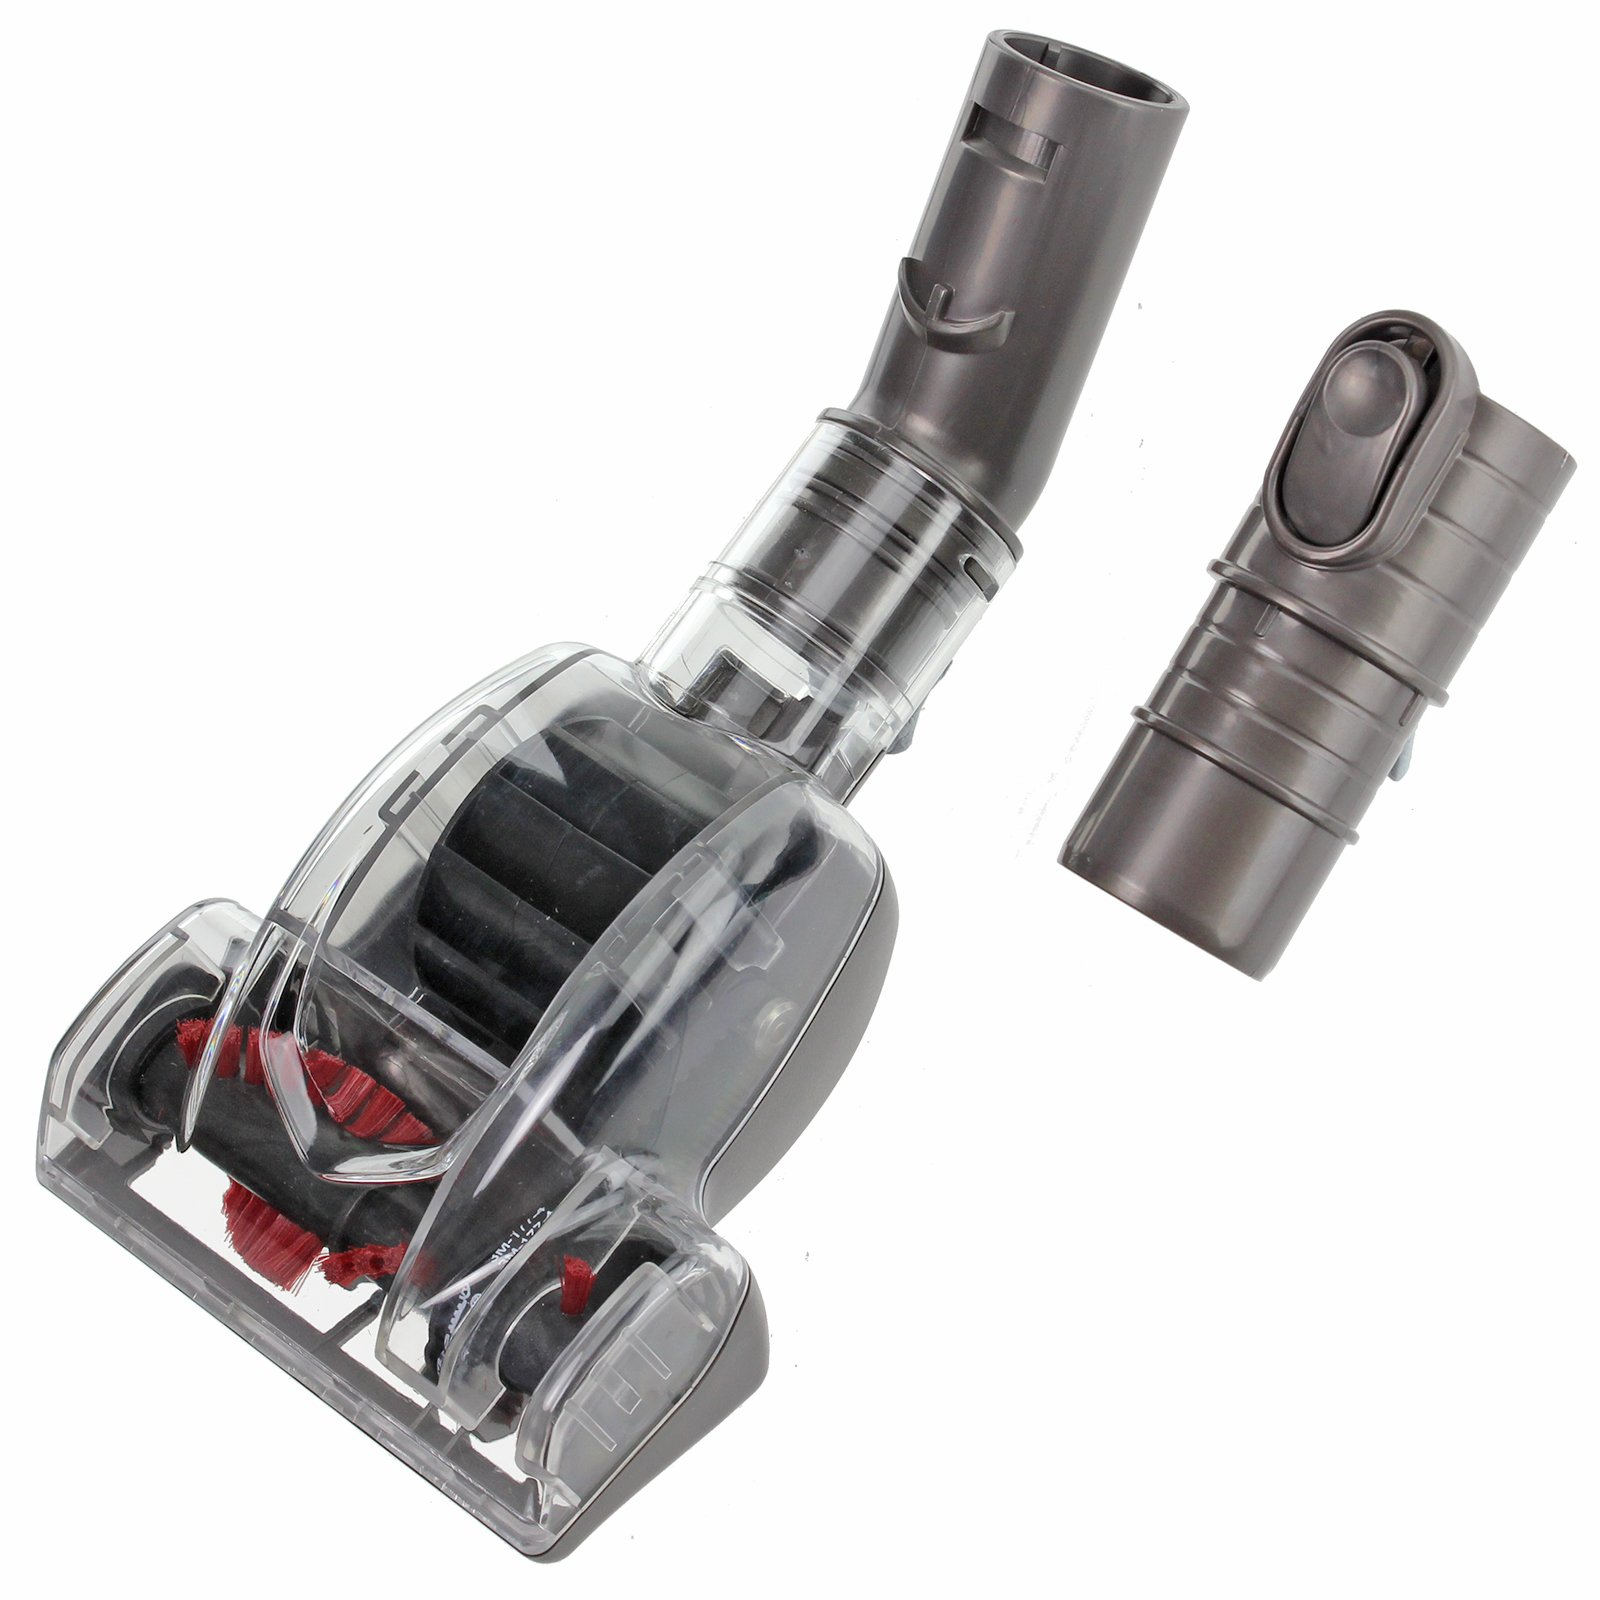 Spares2go Mini Turbo Turbine Brush For Dyson DC11 DC14 DC15 Vacuum Cleaner (High Power - Air Driven)